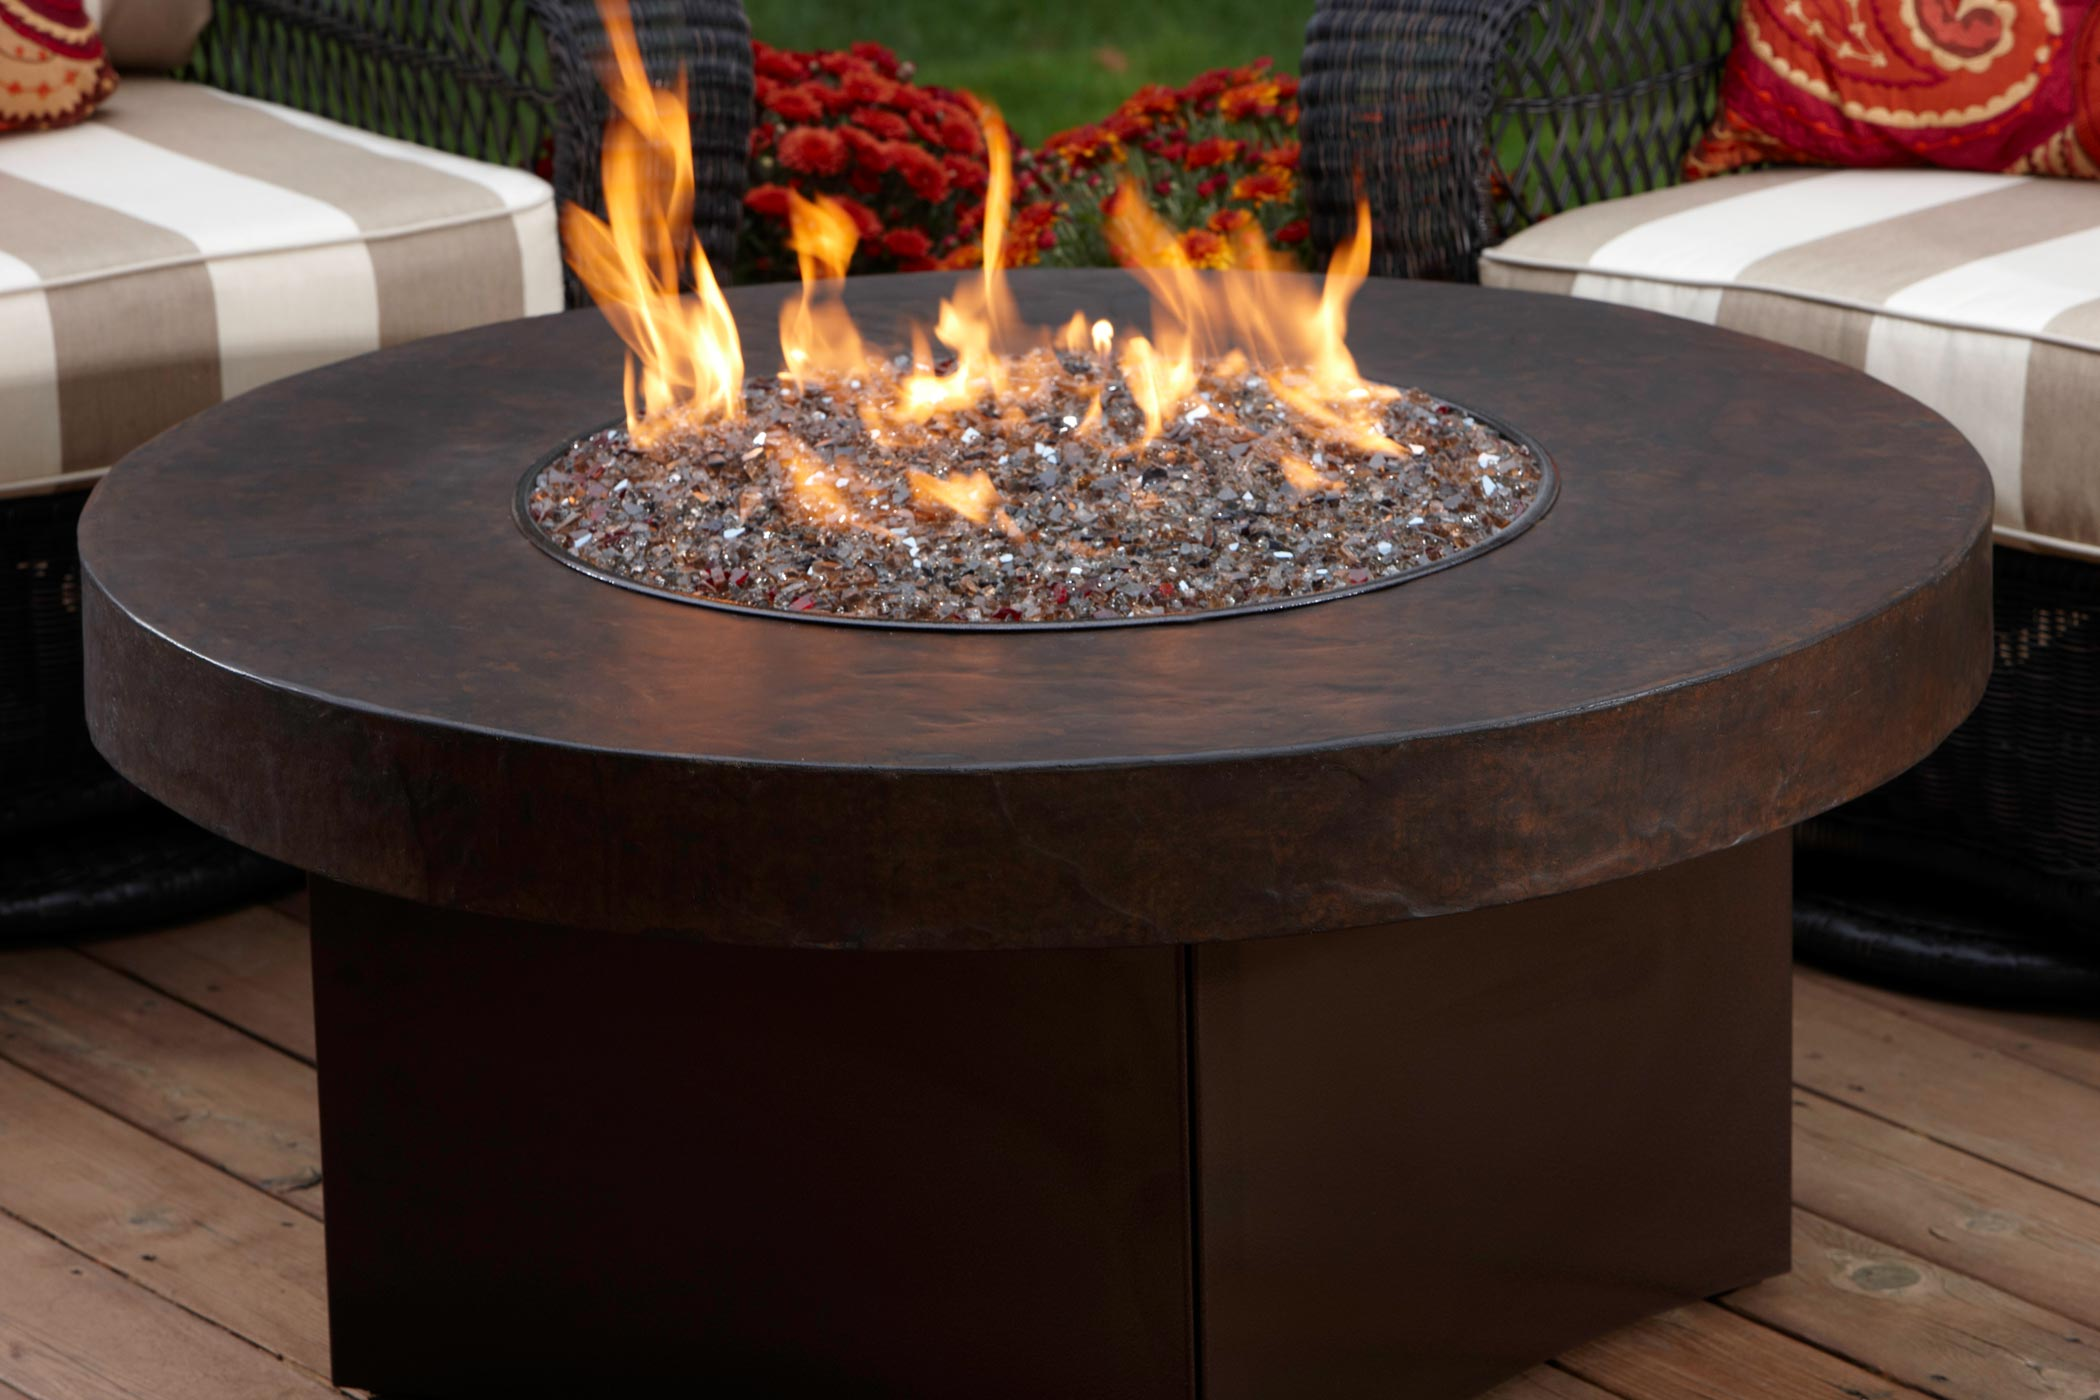 Outdoor Fireplace Tables Are Hot Hot Hot Rooms With Style Home Staging And Redesign Shar Sitter Minneapolis Mn